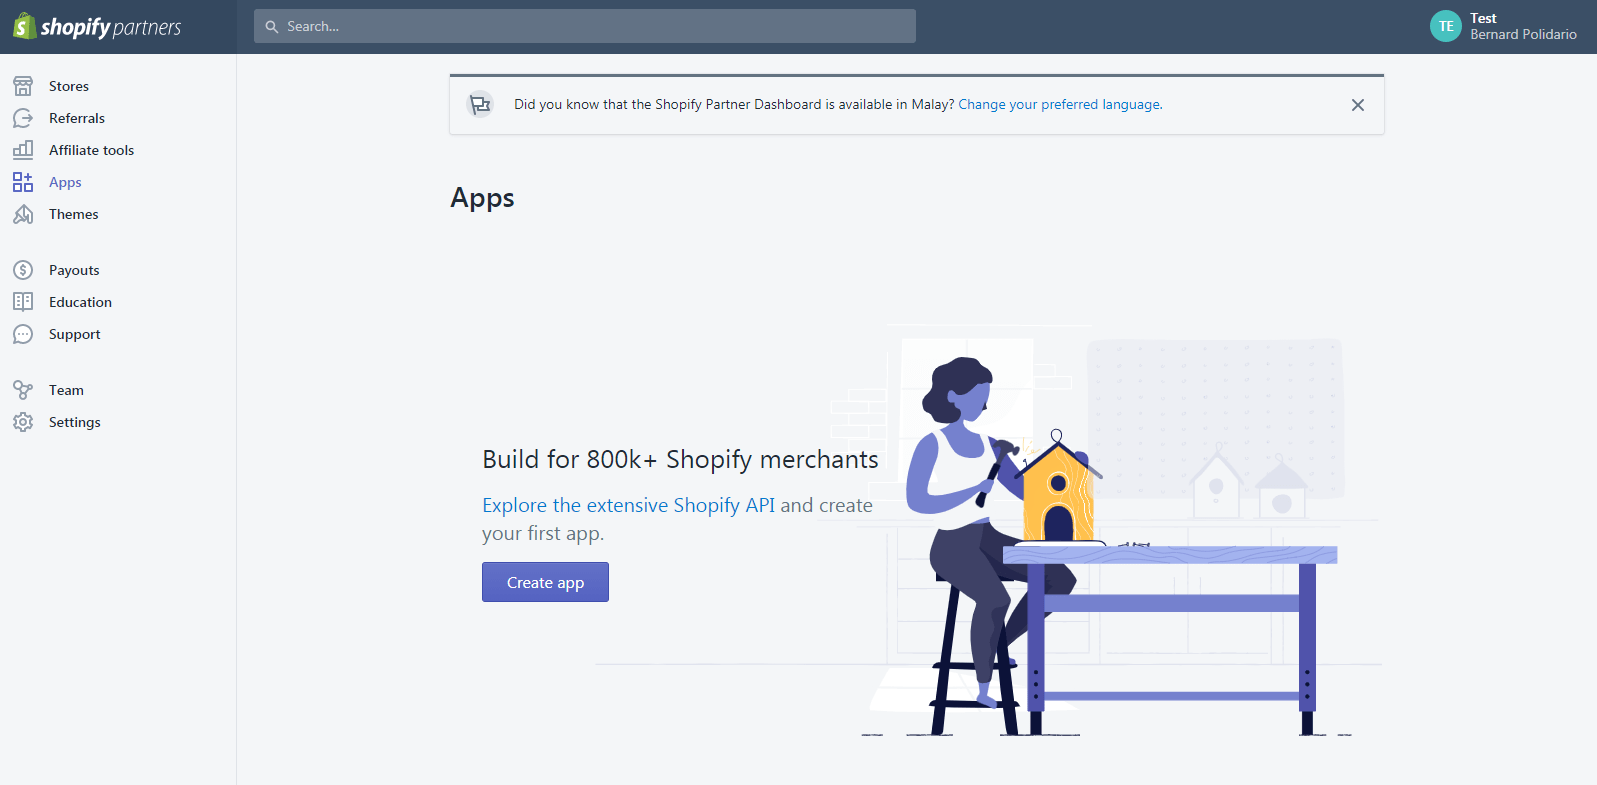 Shopify Partner Dashboard: Create new apps